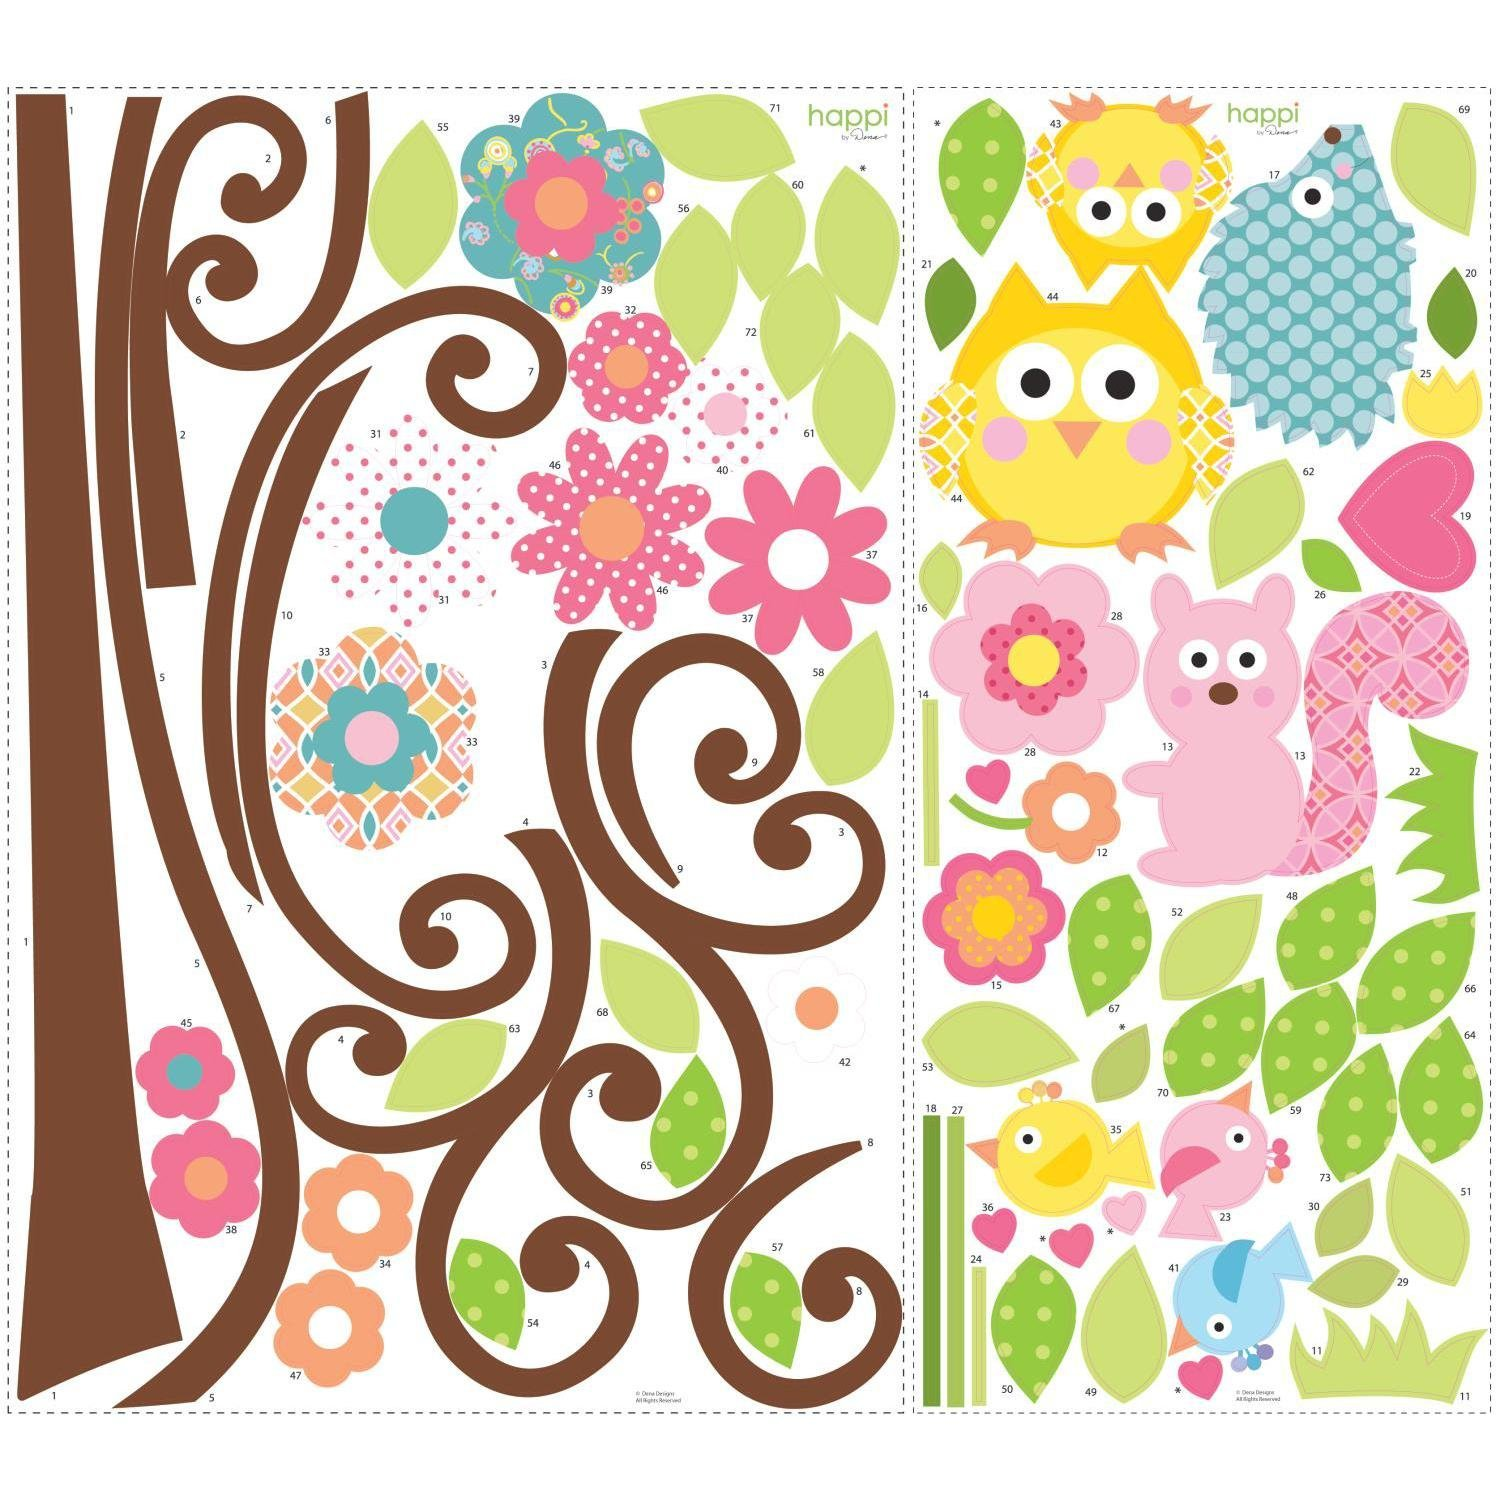 scroll-tree-wall-decal-set-layout.jpg